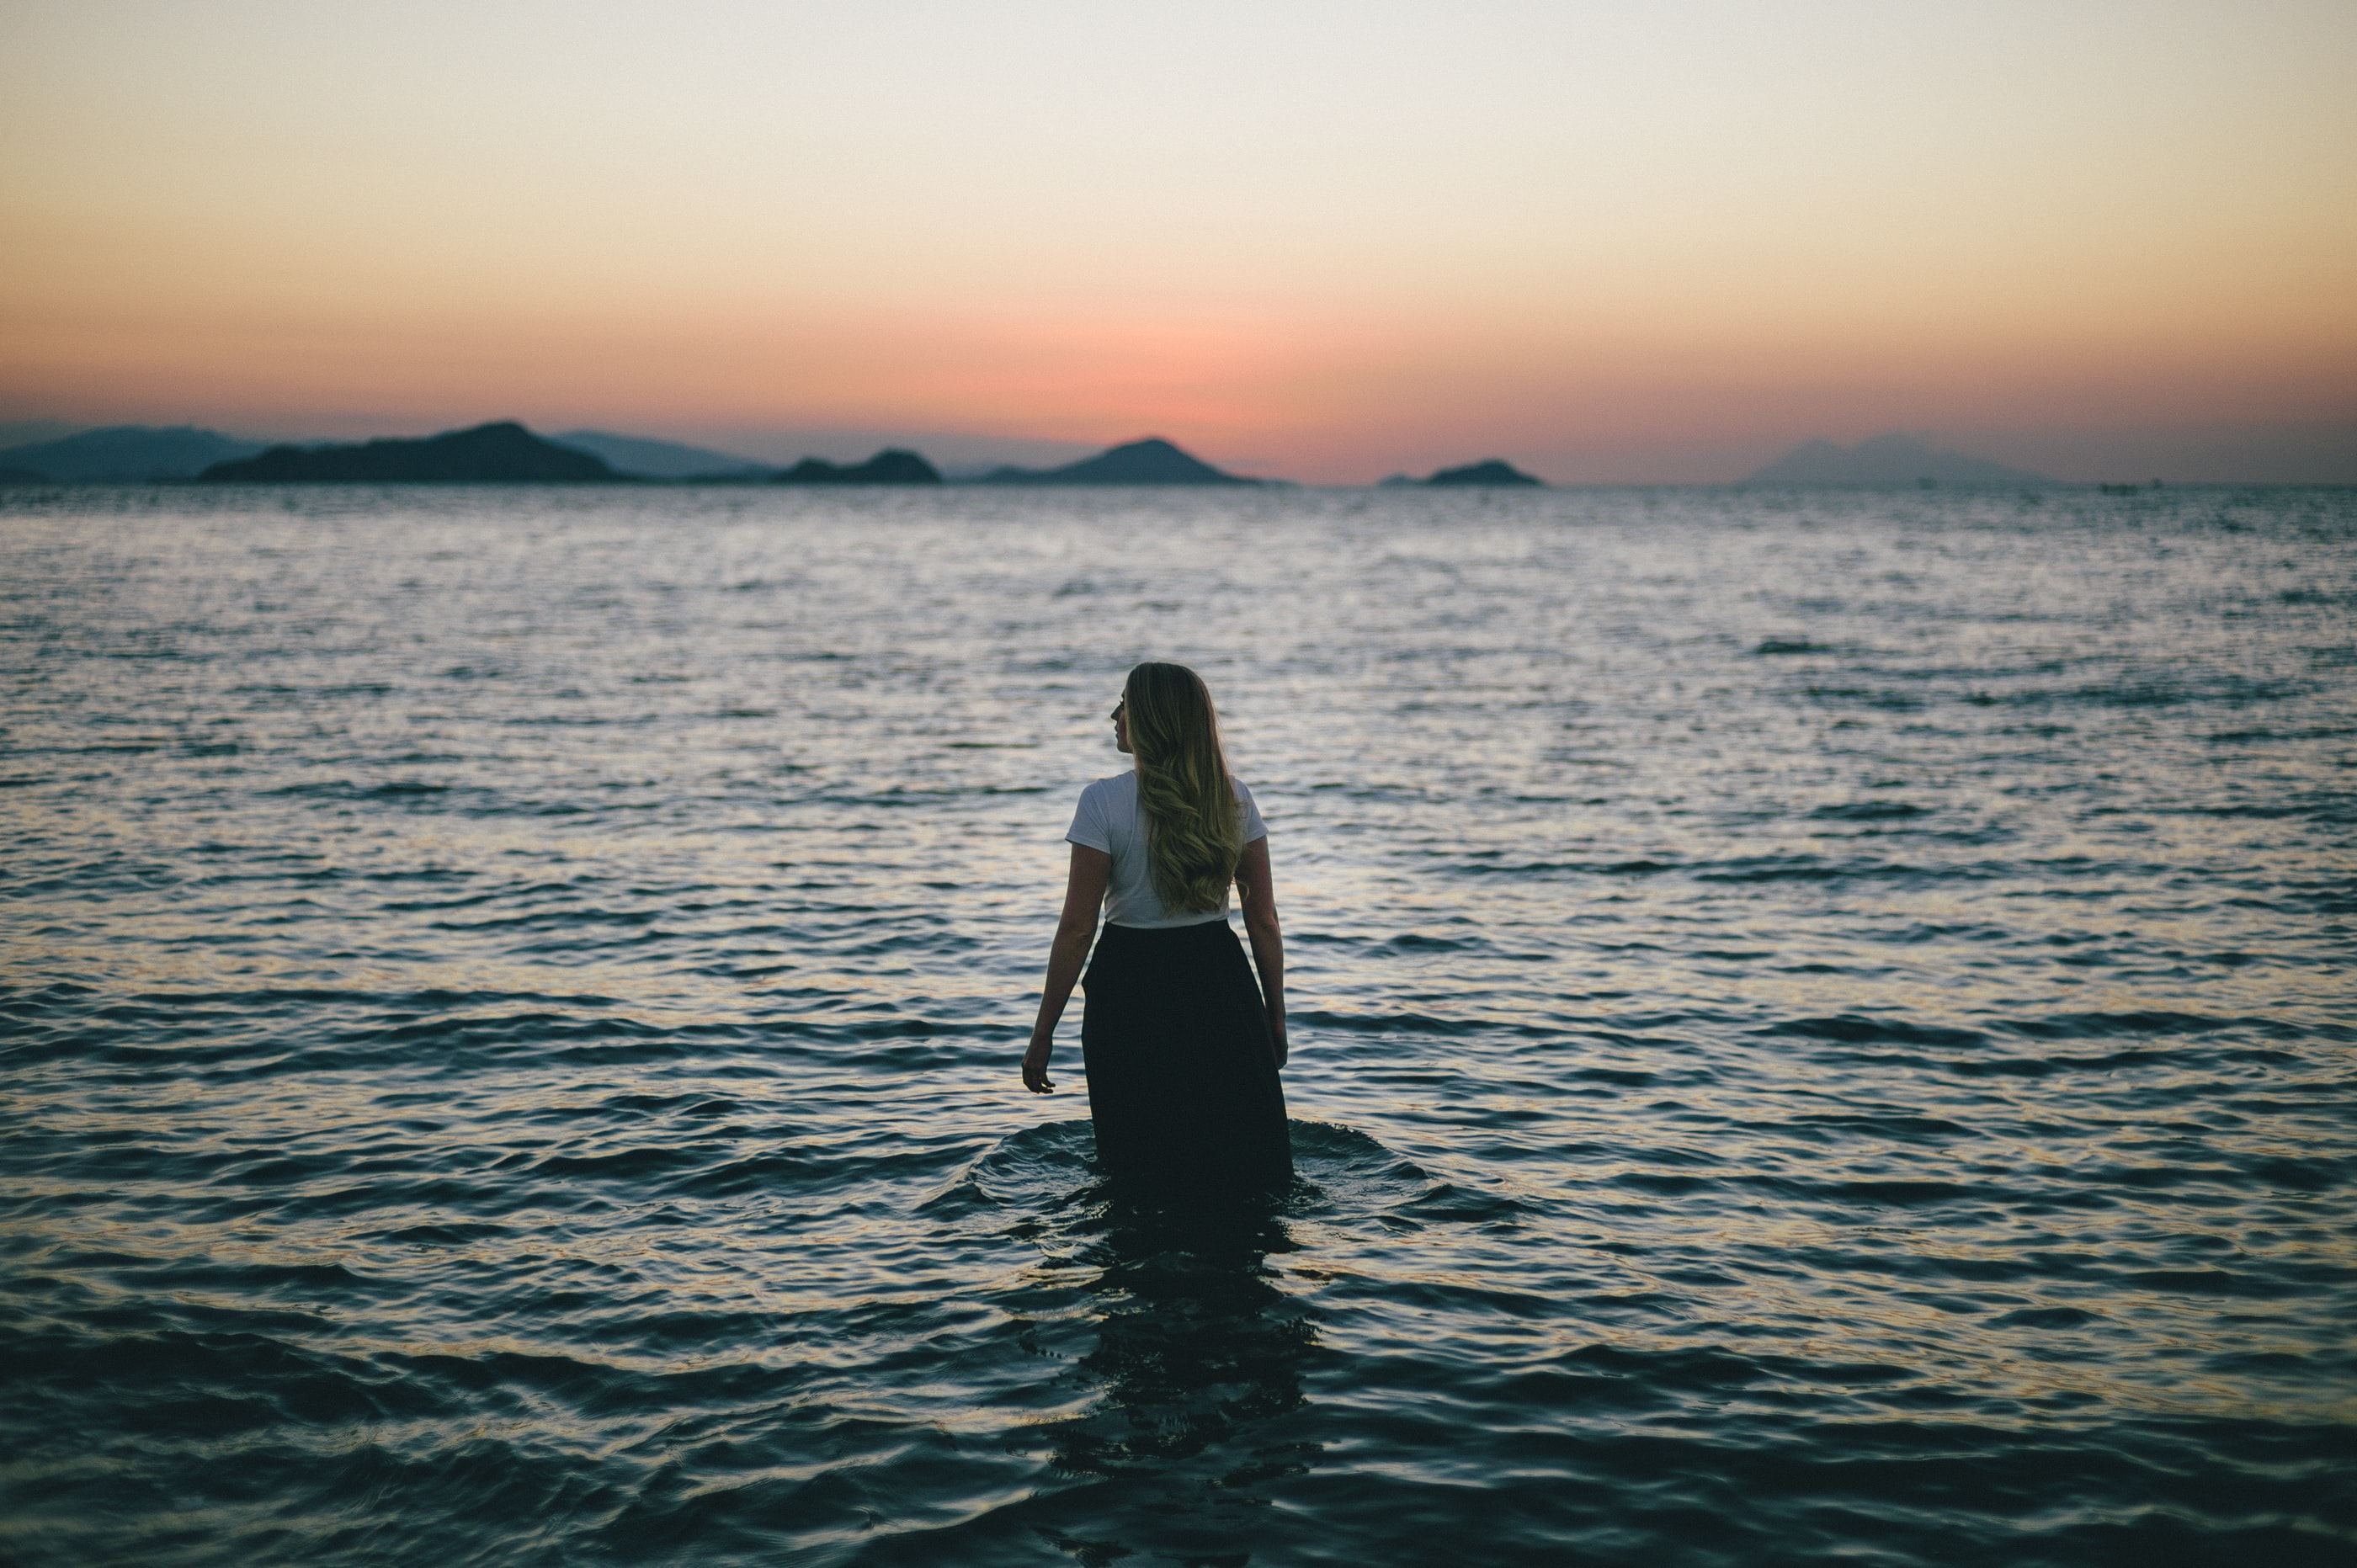 The back of a woman standing knee-deep in the ocean looking into the distance at dusk